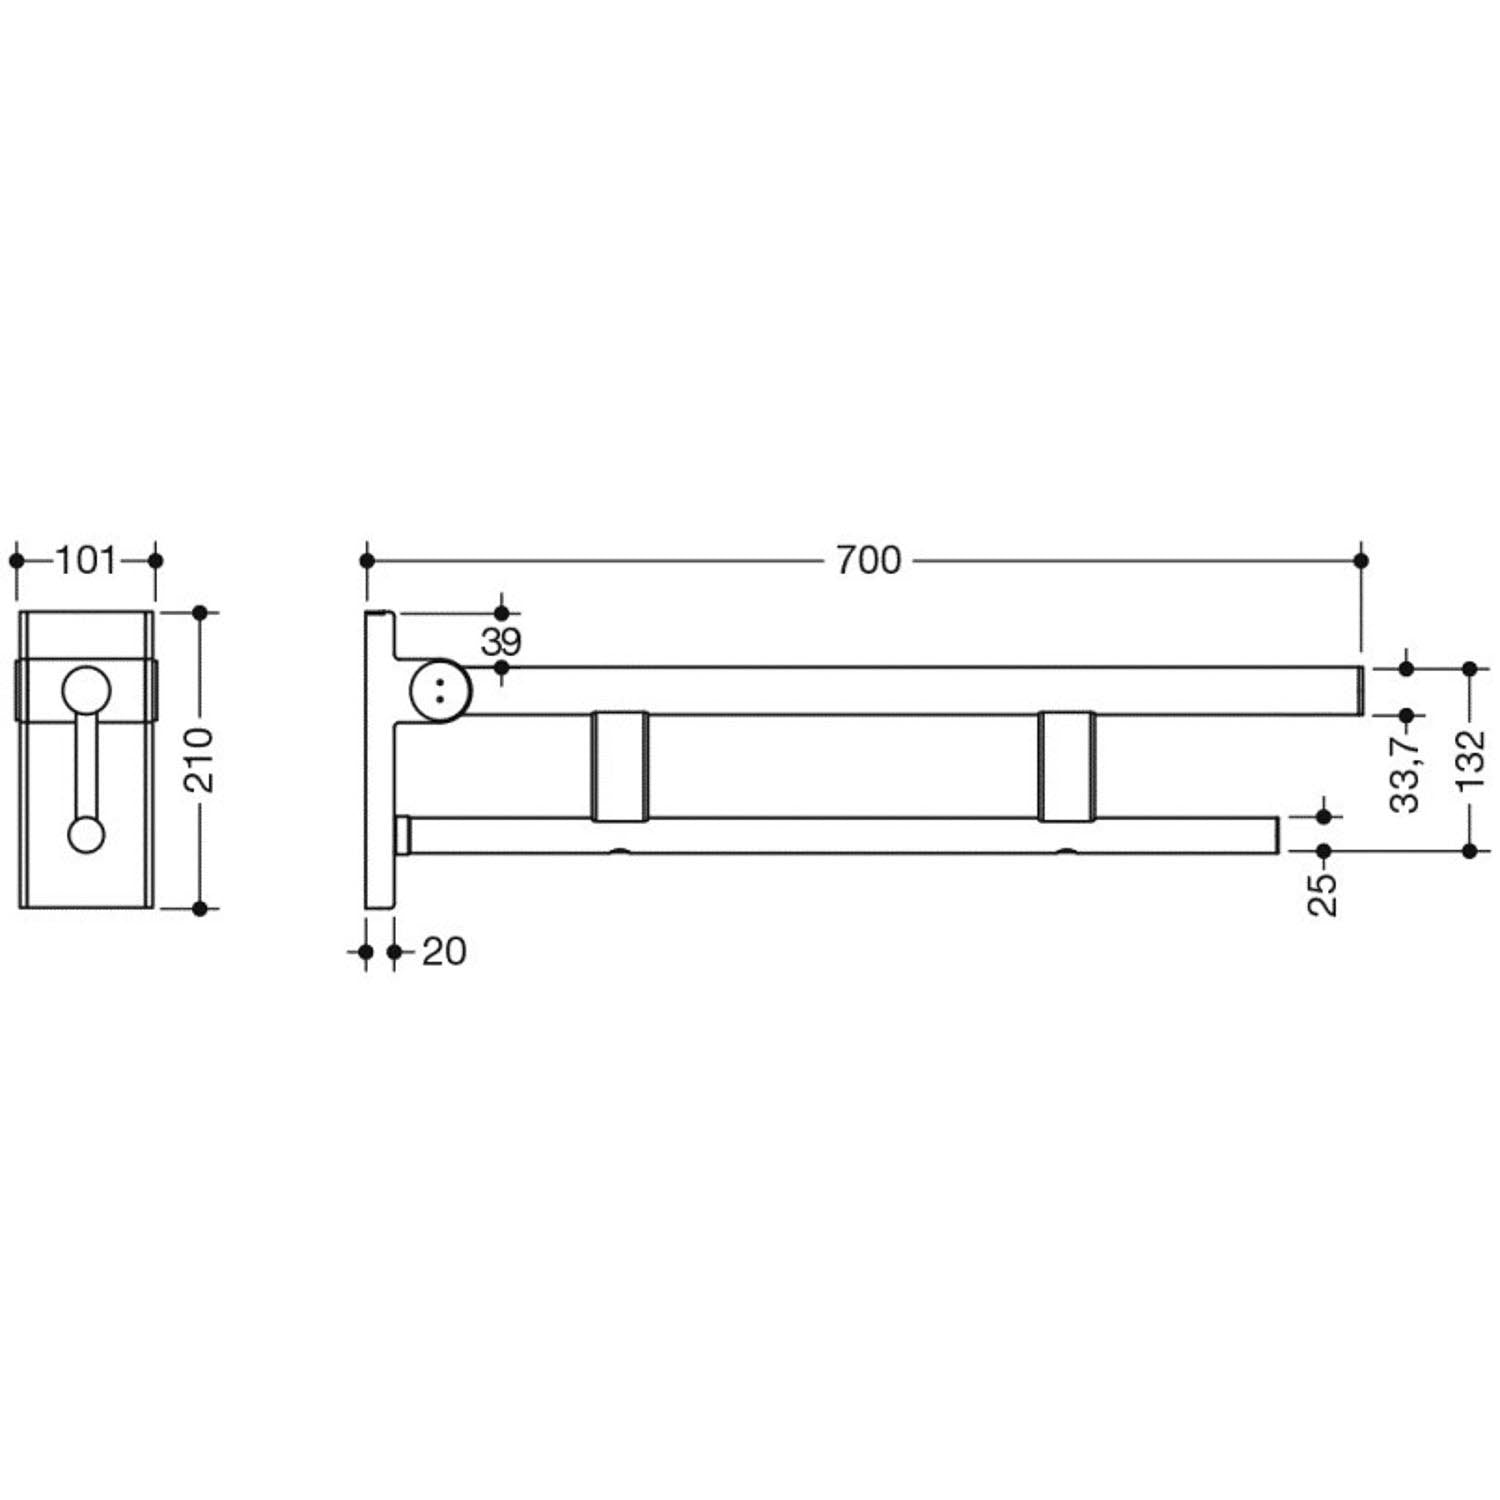 700mm Freestyle Hinged Grab Rail with a satin steel finish dimensional drawing